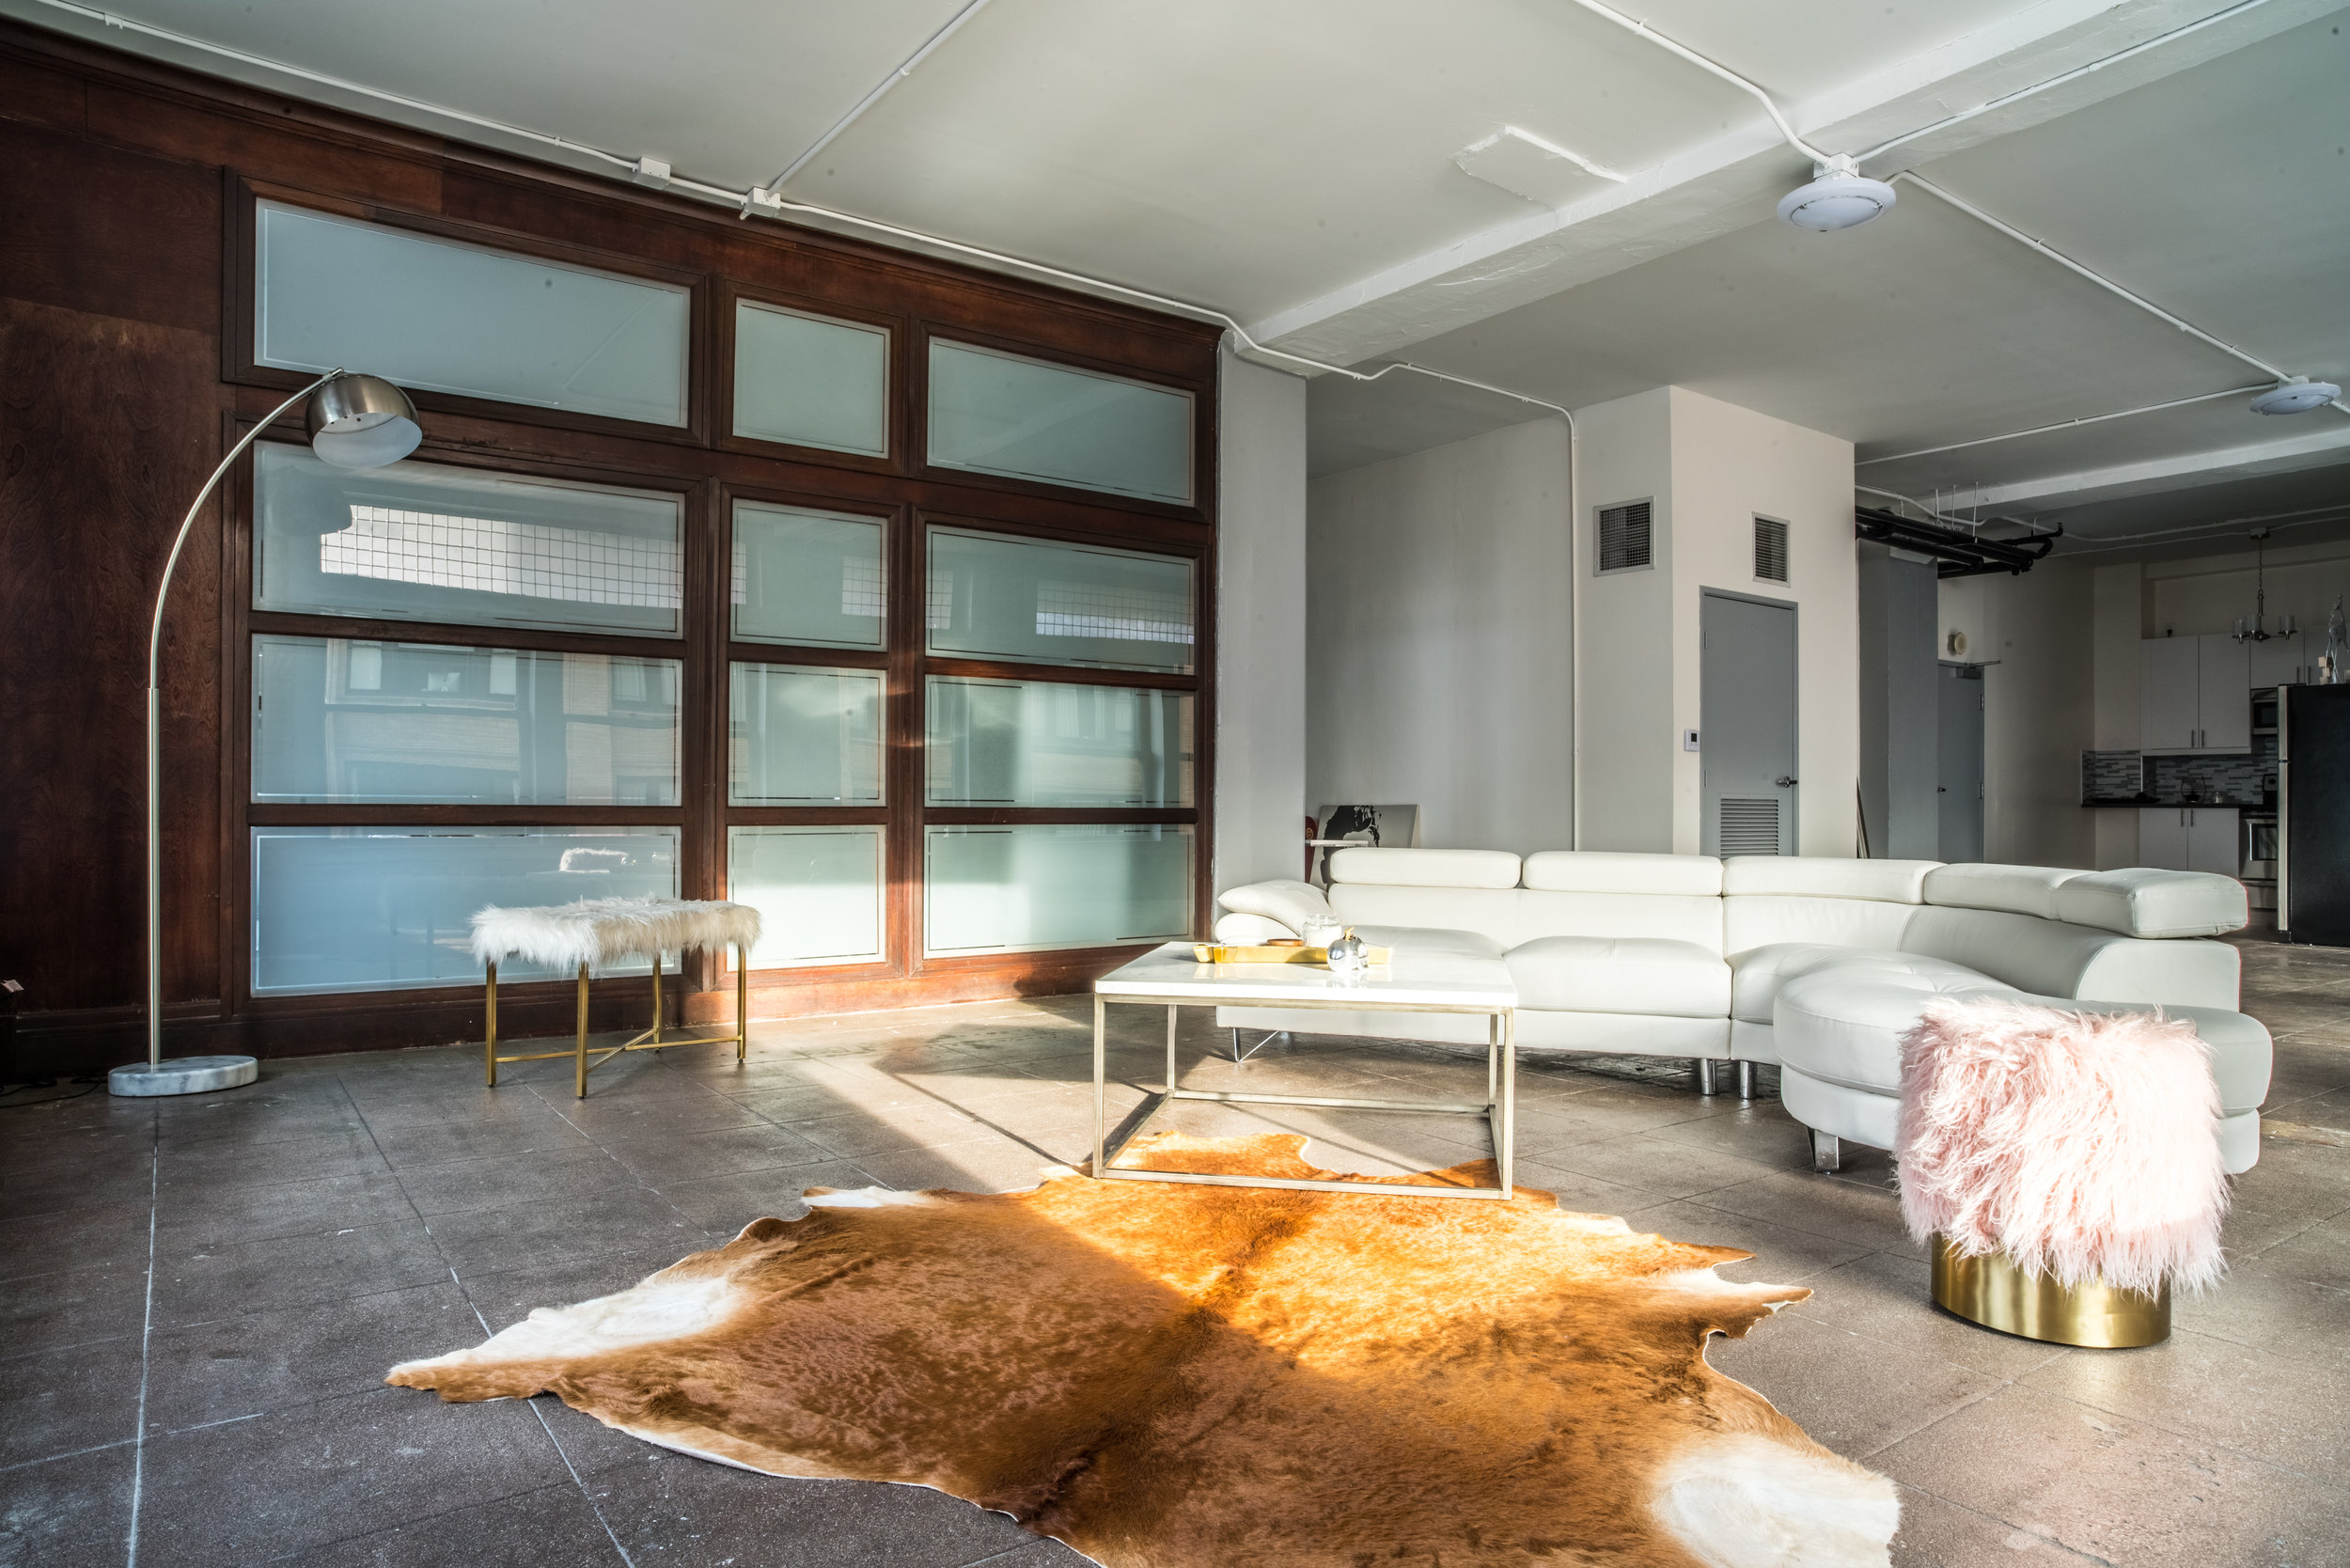 art deco gem WITH ELEMENTS OF INDUSTRIAL DESIGN filled with lightin the heart of downtown la - Loft 5w studios